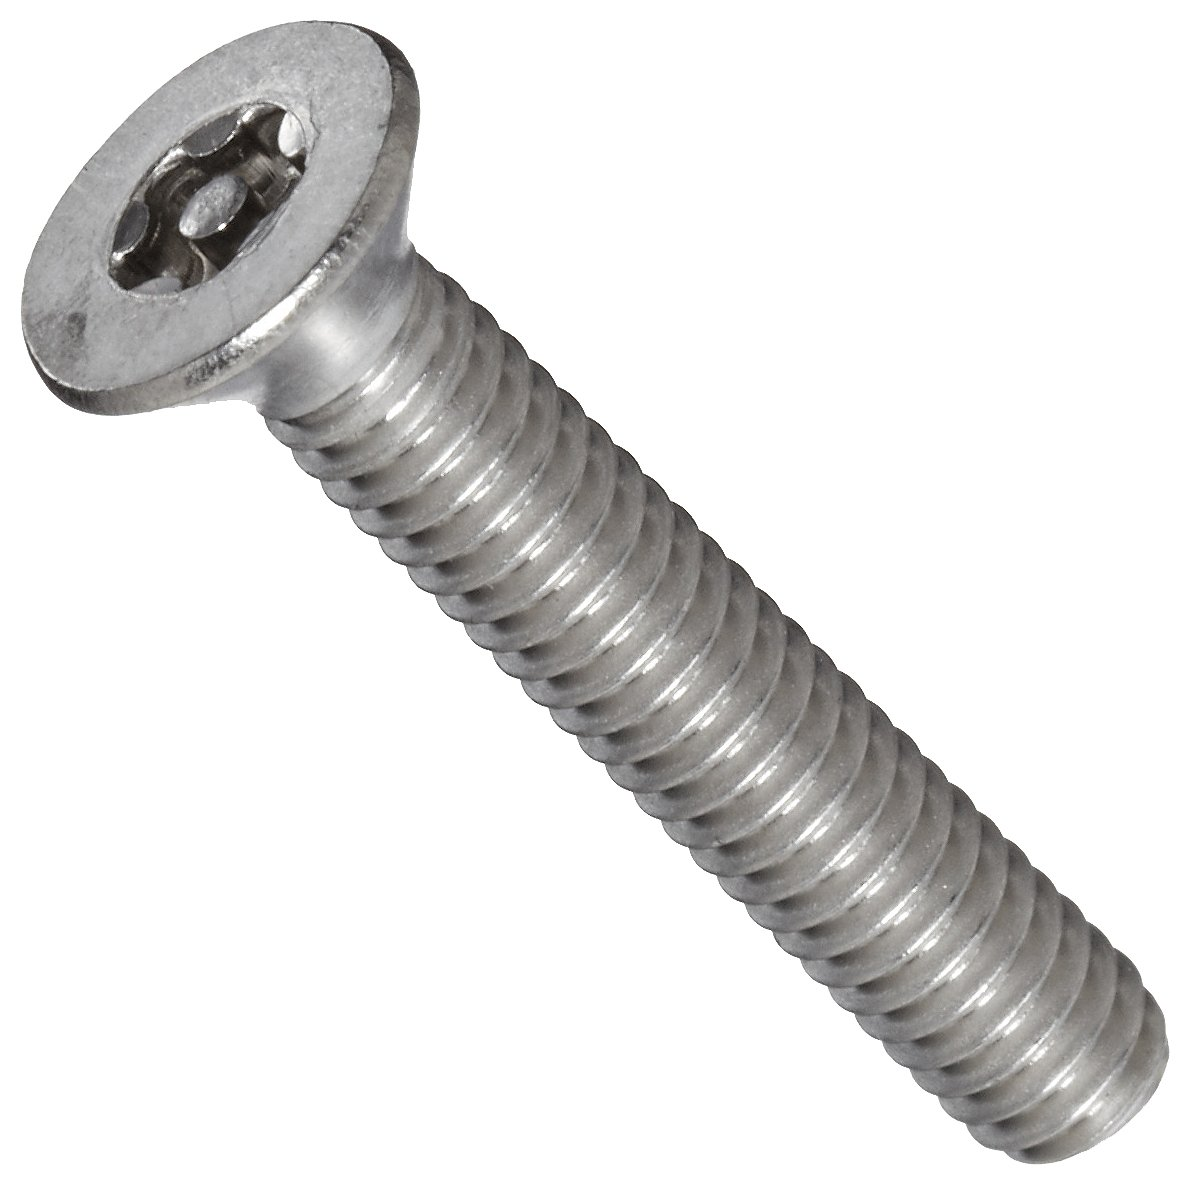 Pin In Star Drive Made in US Flat Head 3//4 Length Pack of 25 3//4 Length Tamper-Pruf 91670 #12-24 Threads 18-8 Stainless Steel Socket Cap Screw